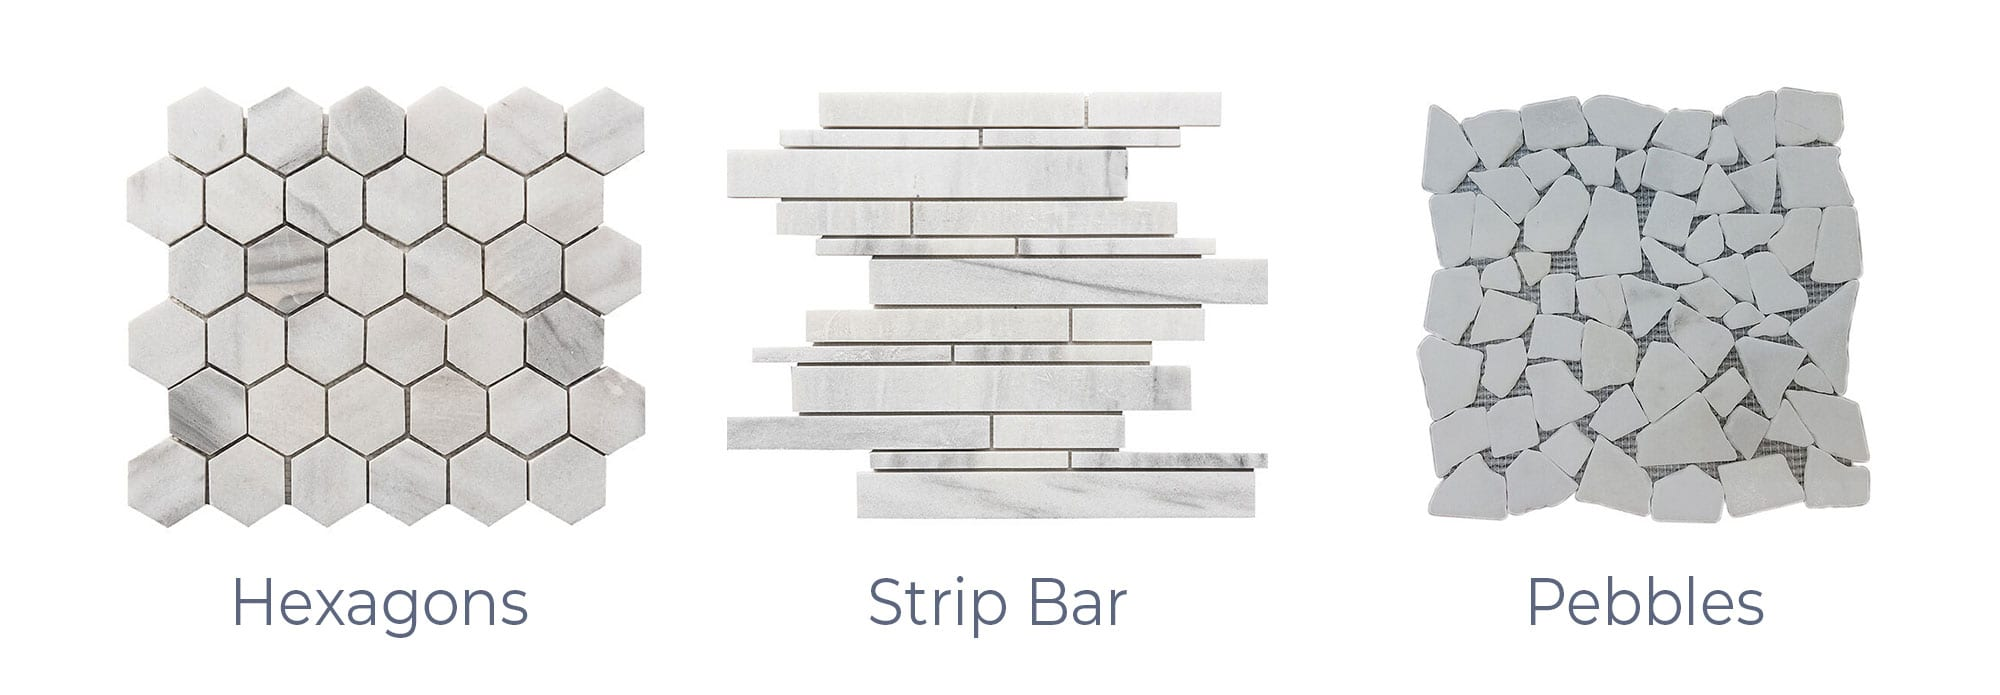 Stoneline-Group-Ice-White-Marble-Collection-Marble-Mosaics-Hexagons-Strip-Bars-Pebbles-Pictures-d